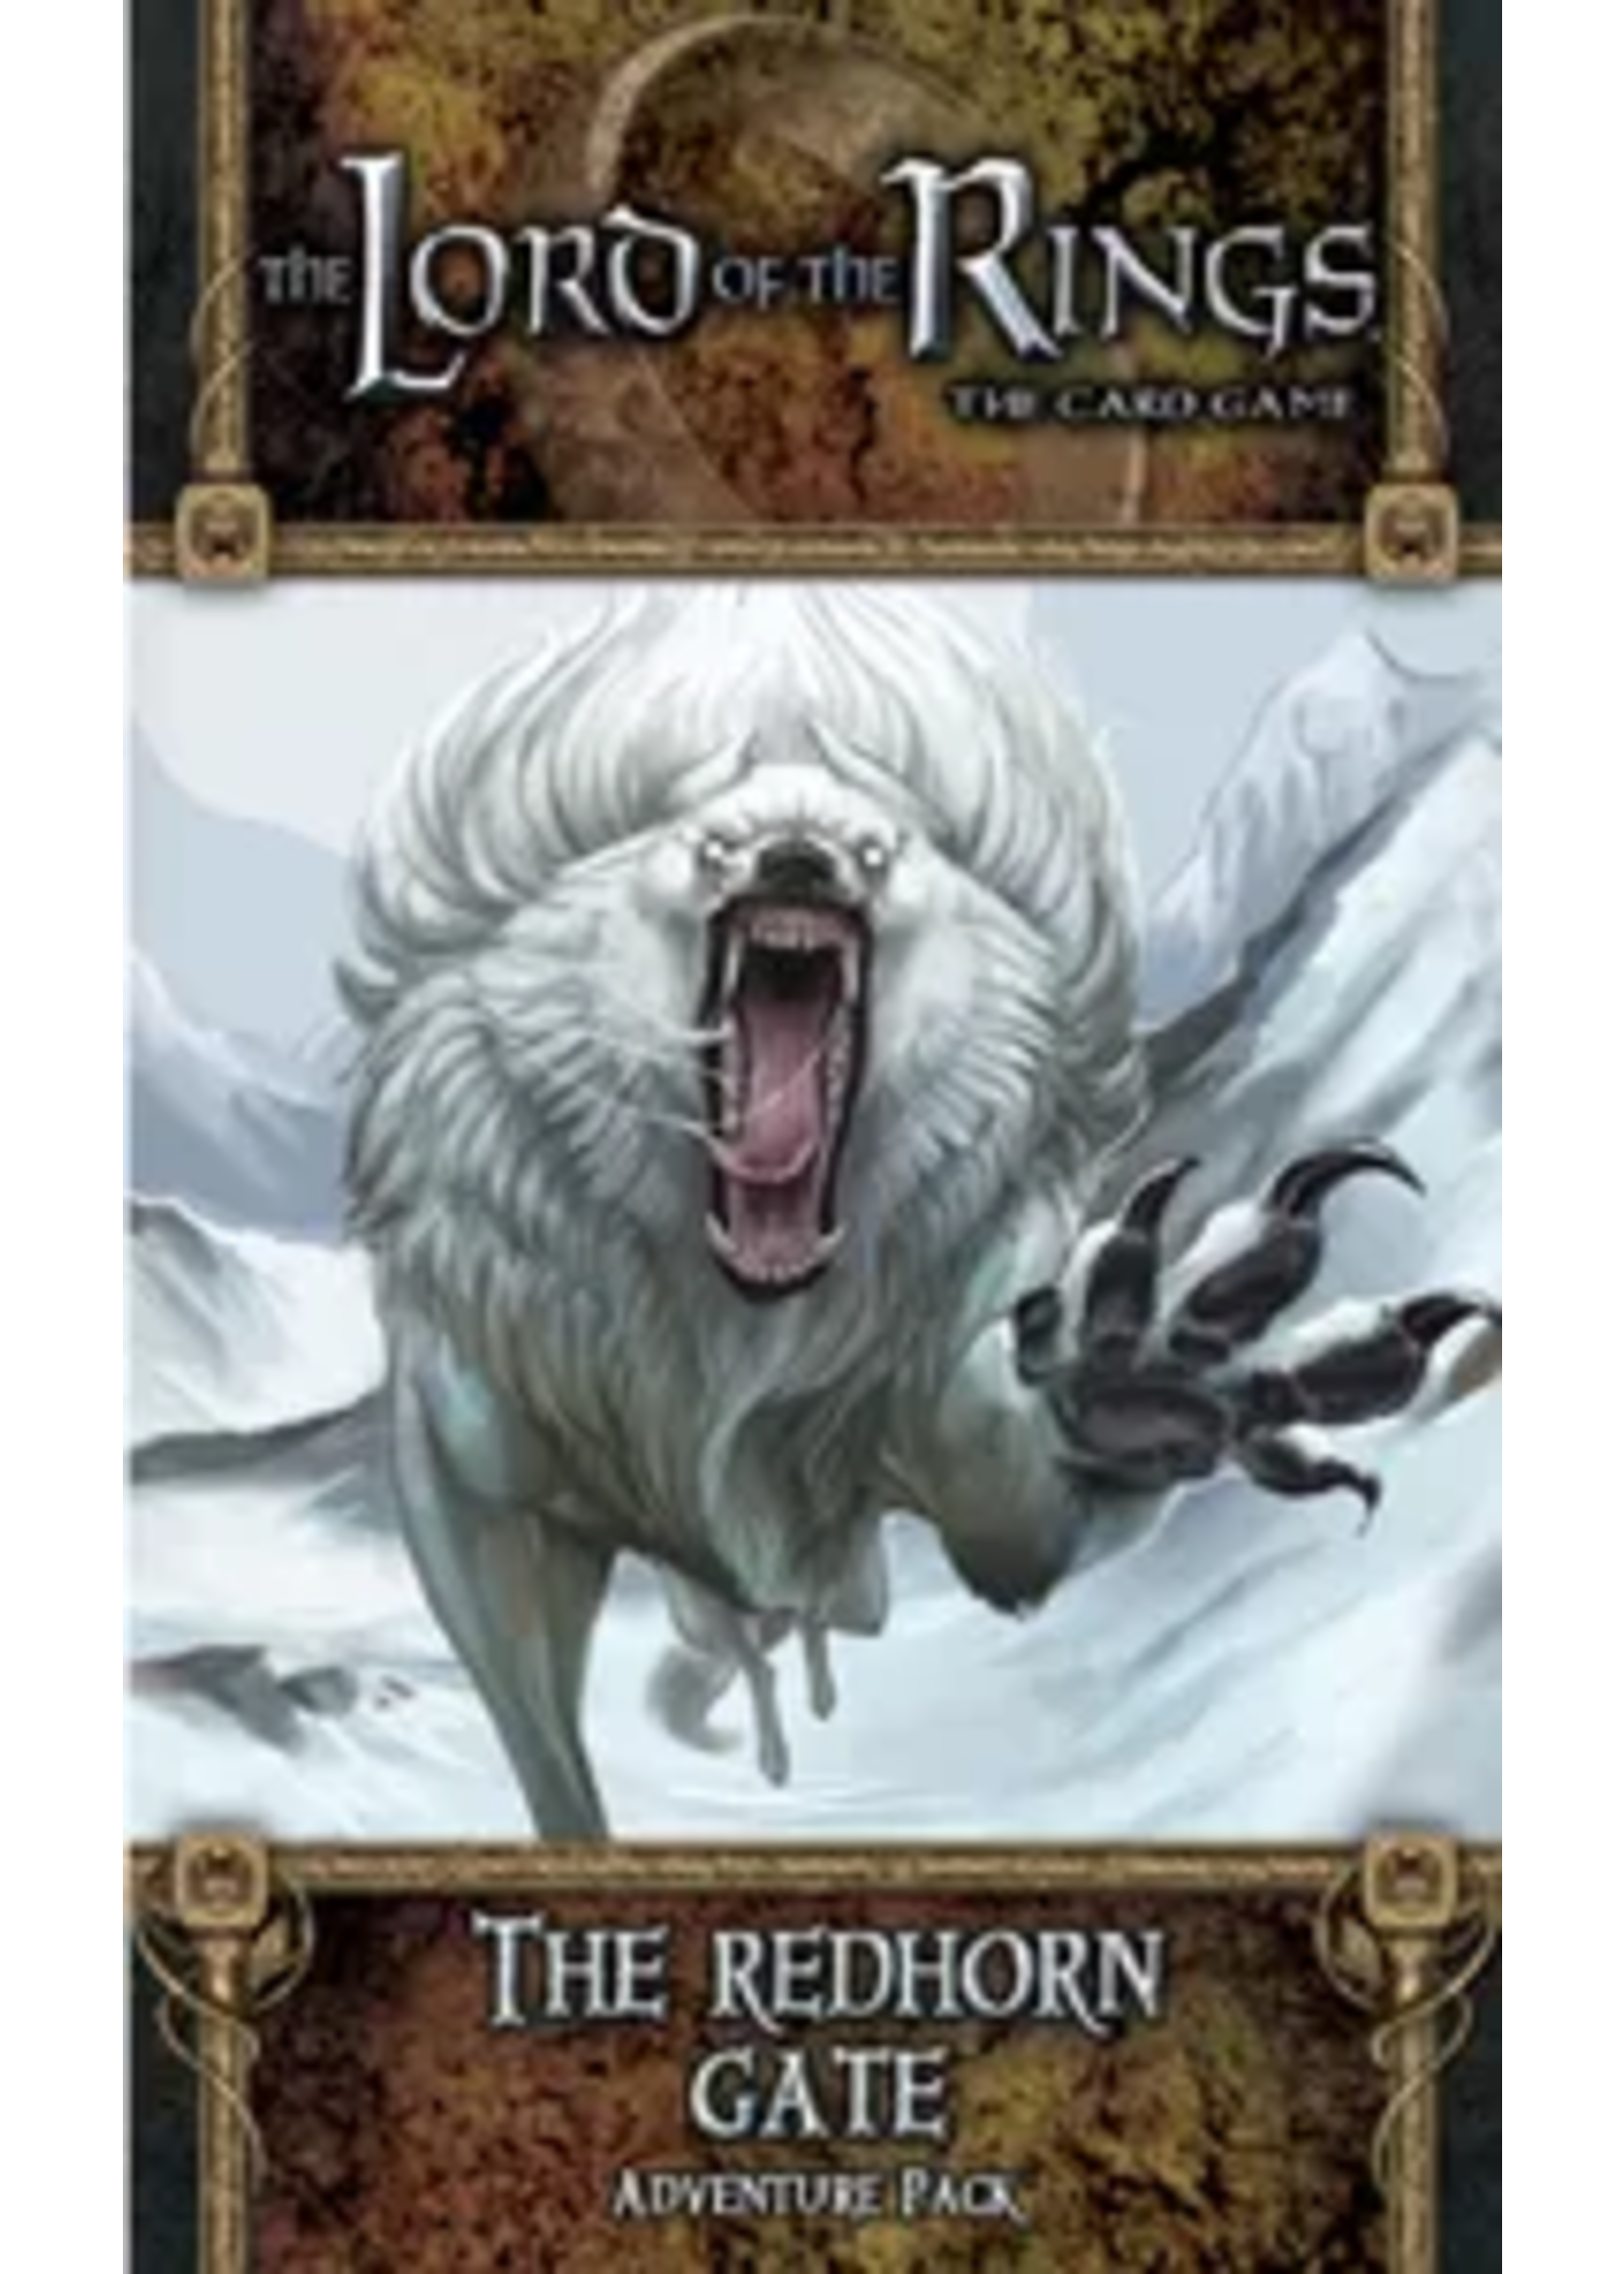 Lord of the Rings LCG: The Redhorn Gate